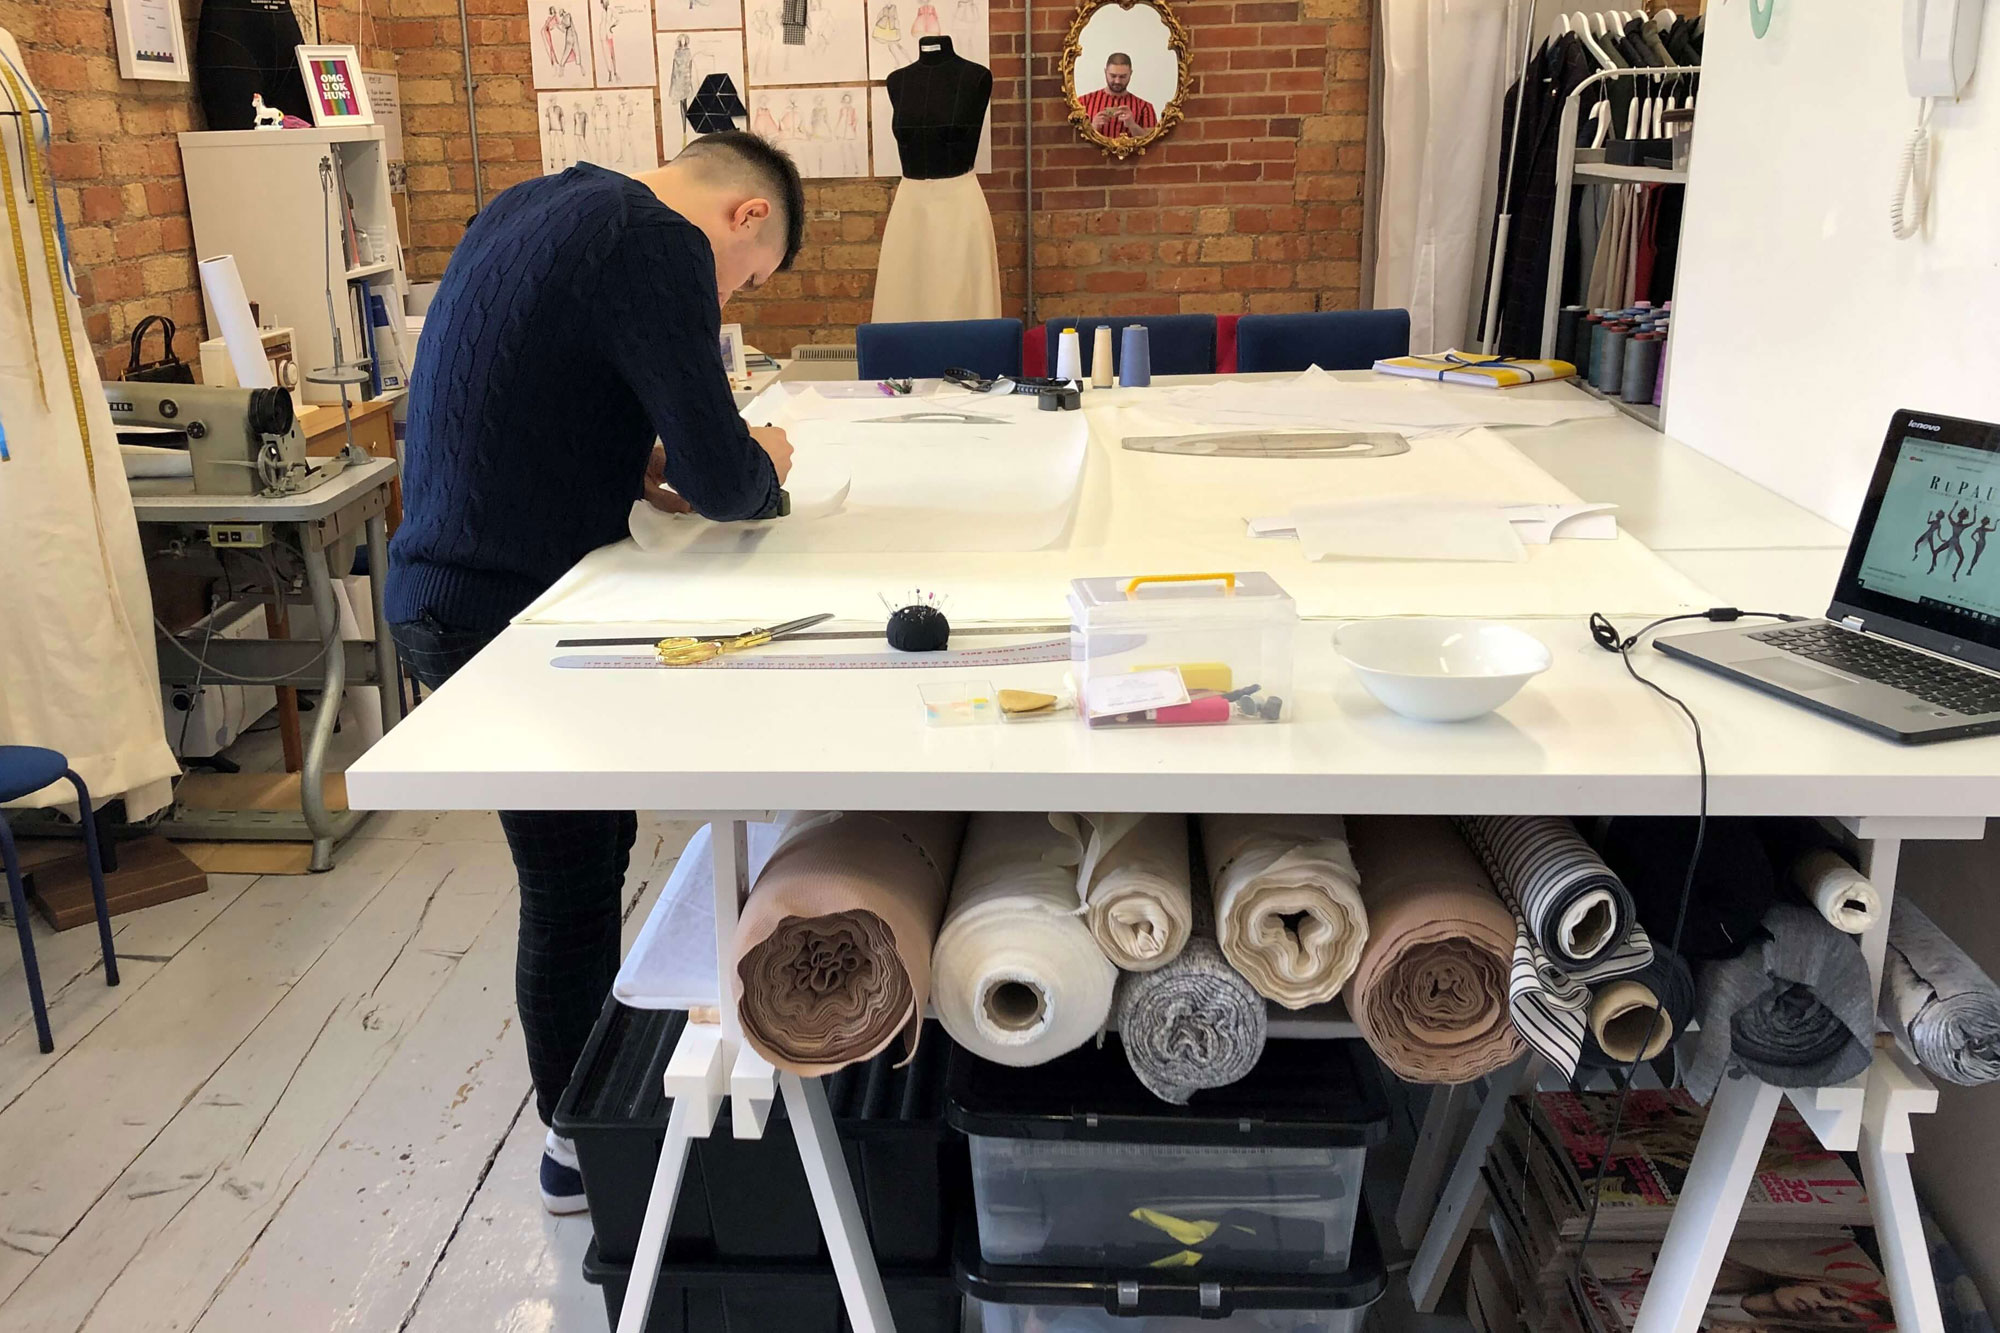 A man in a navy jumper sketching in his studio